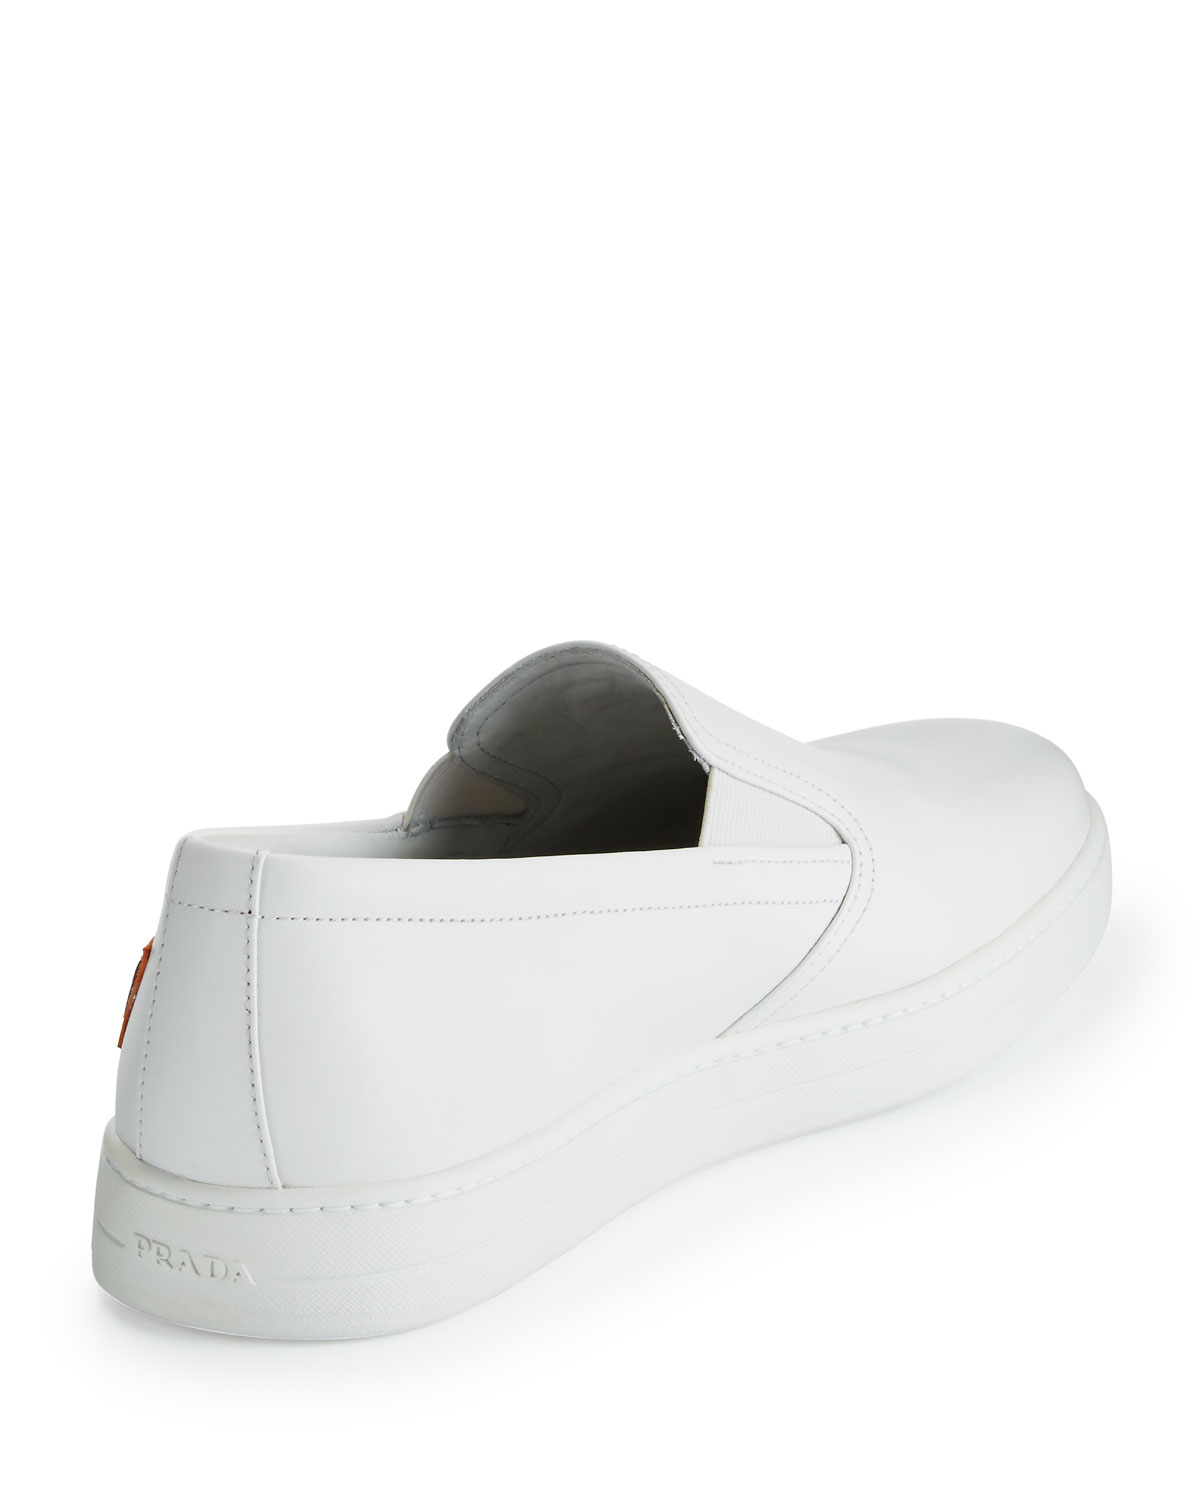 prada suede tote - Prada Lightning-Bolt Leather Slip-Ons in White for Men | Lyst